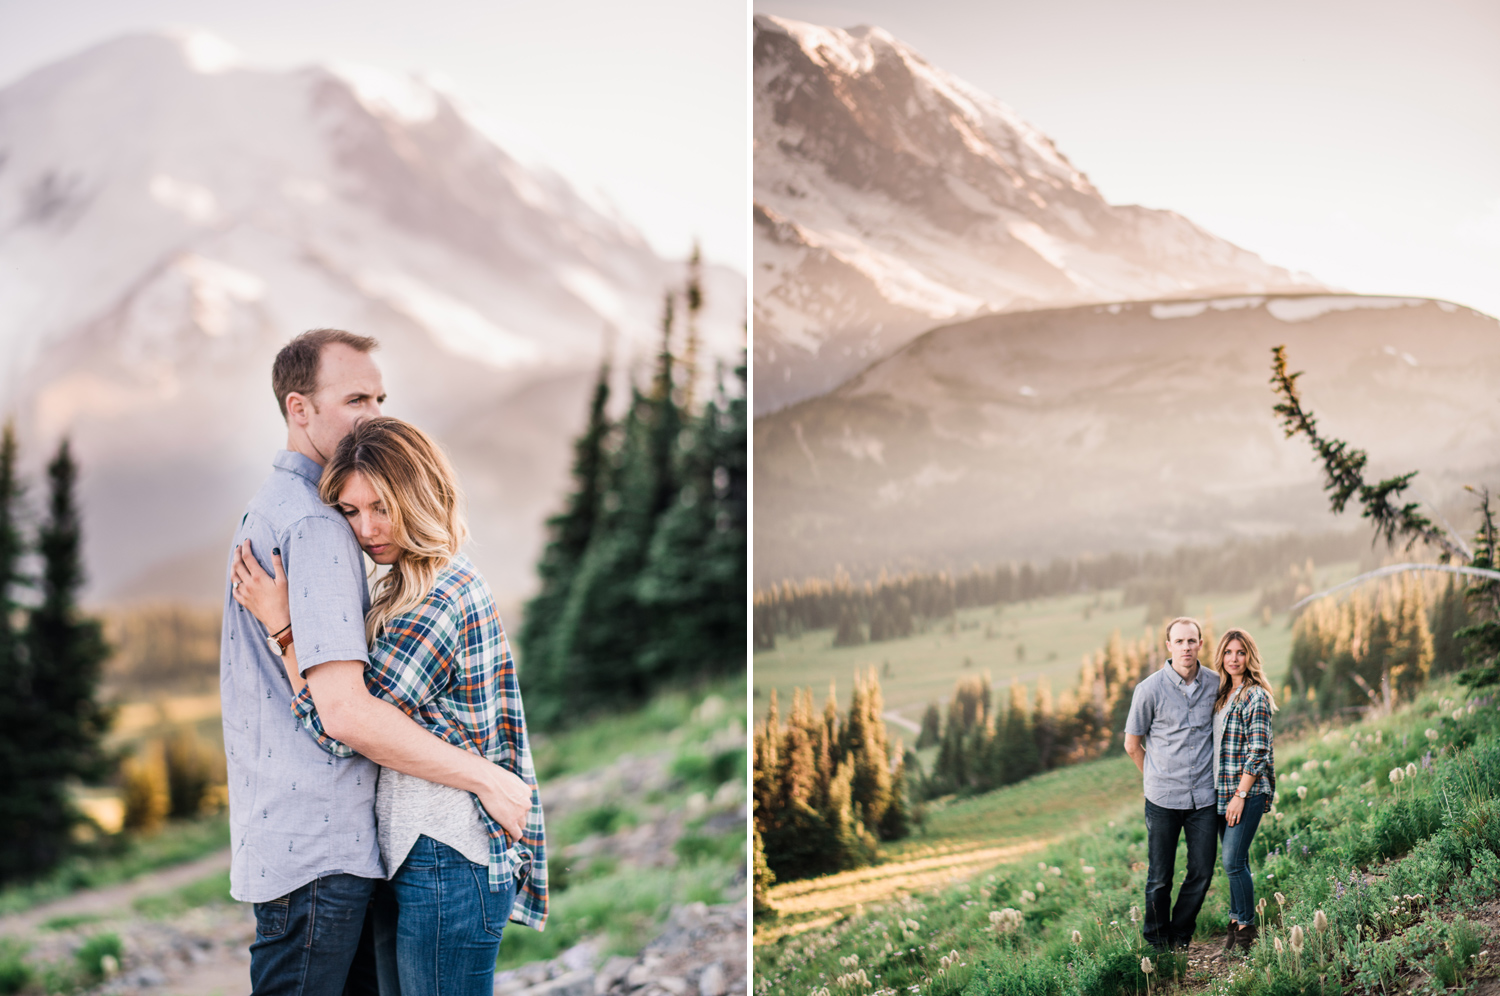 015-mt-rainier-adventure-engagement-session-seattle-film-photographer-ryan-flynn.jpg